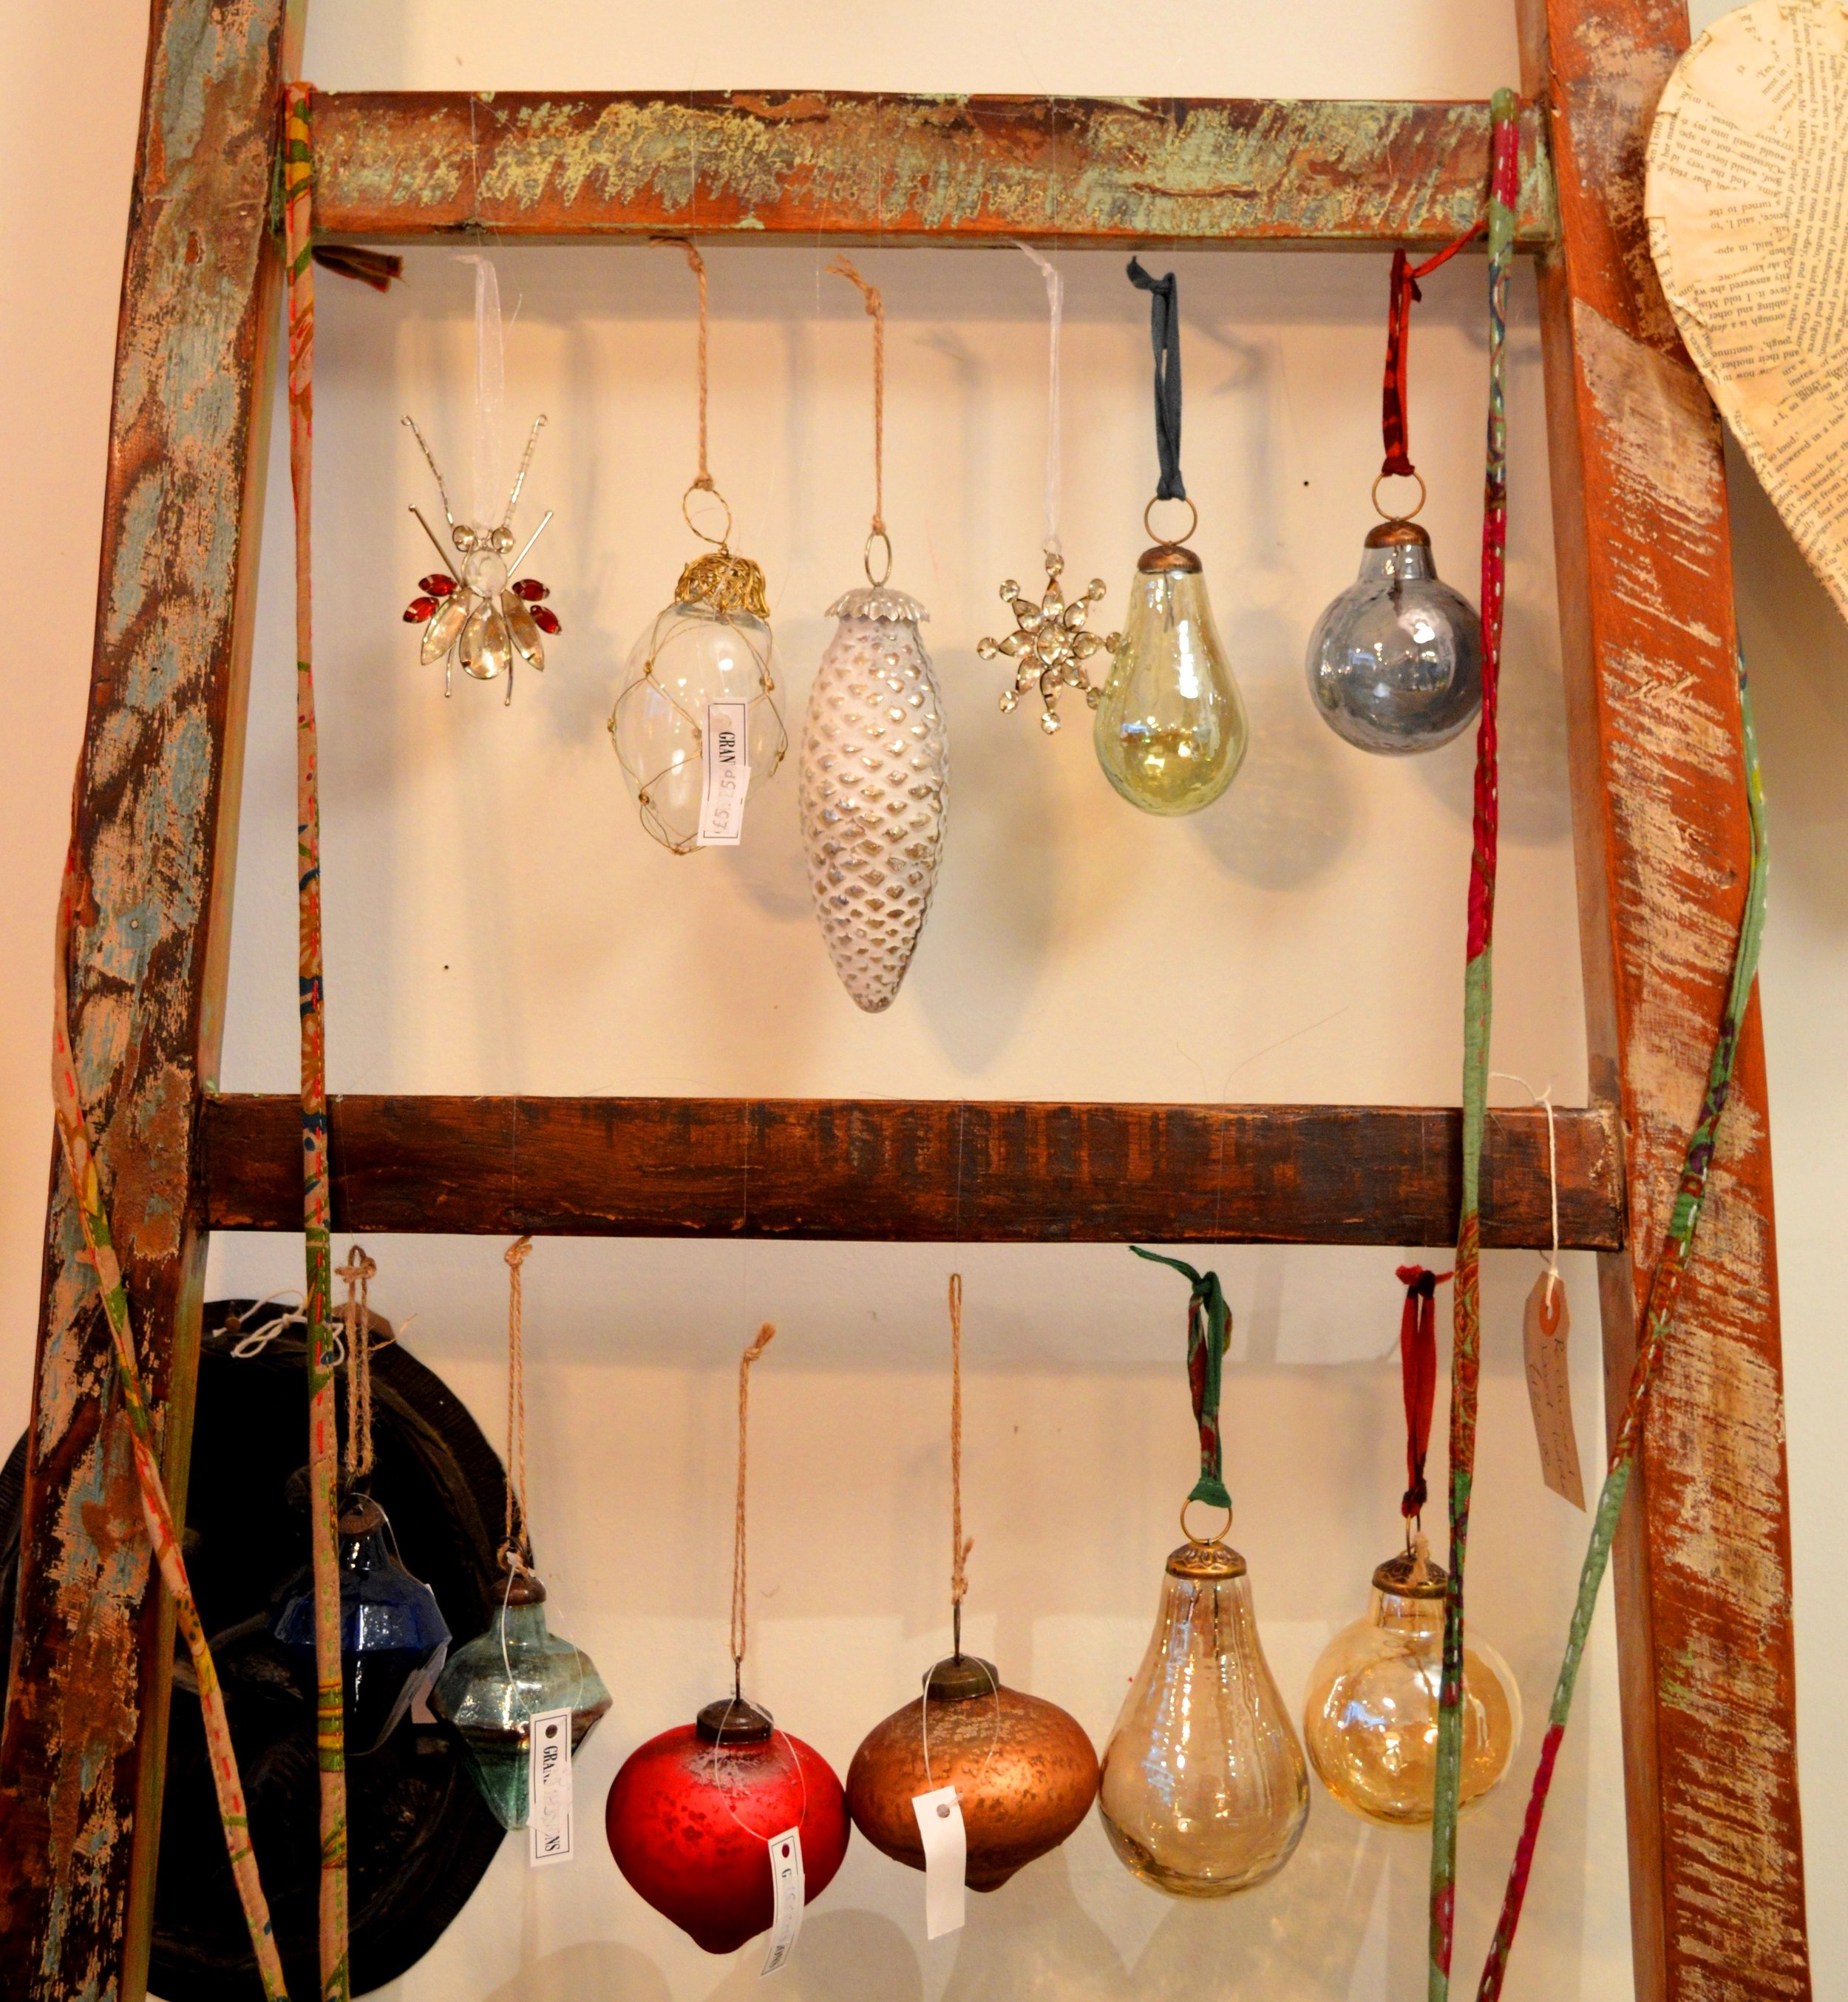 Christmas Baubles - Prices range from £3.95 - £14.95